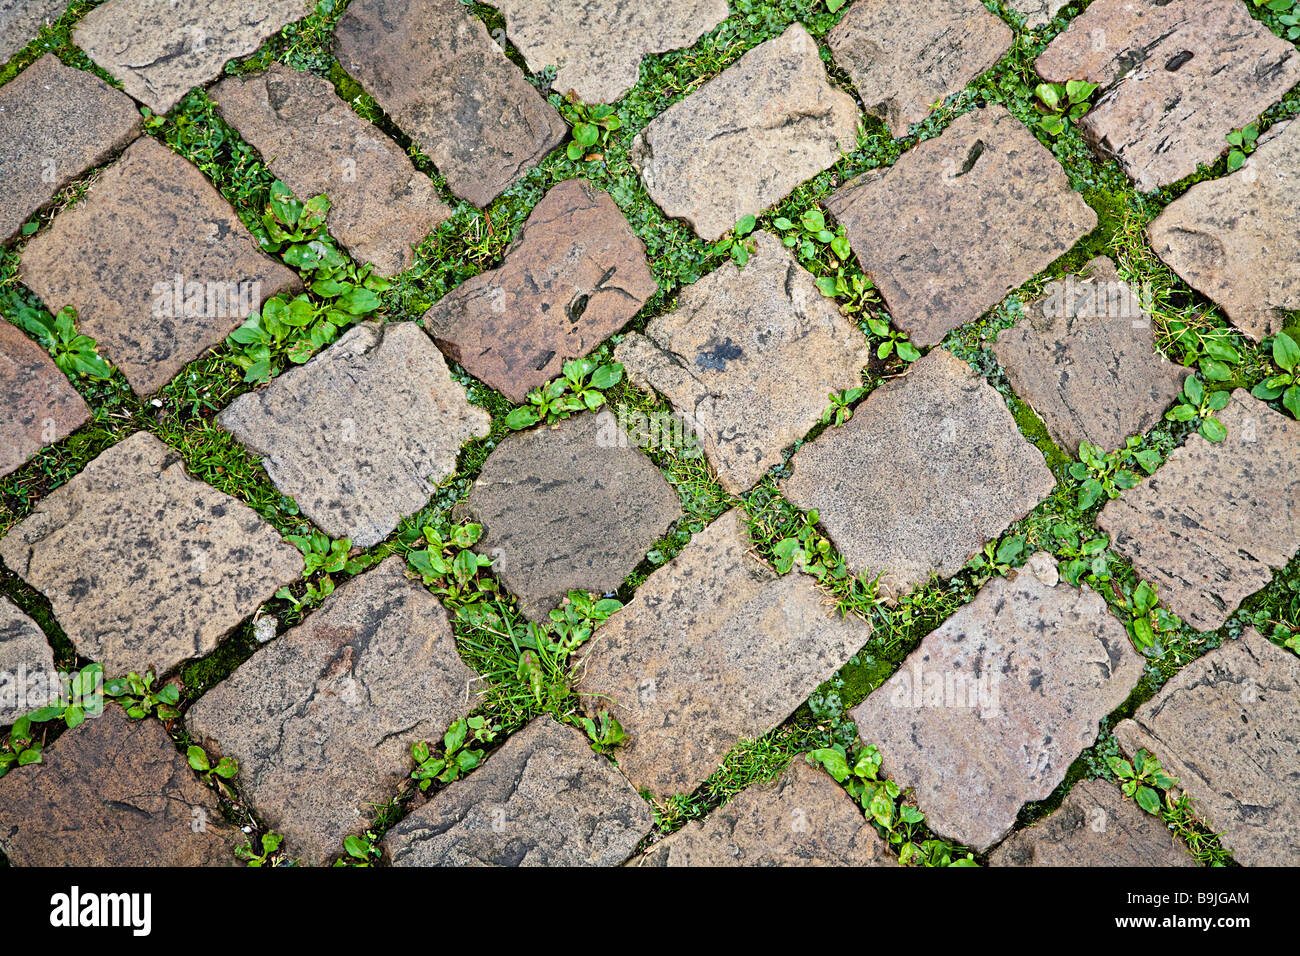 Stones in old street surface Hamelin Germany - Stock Image